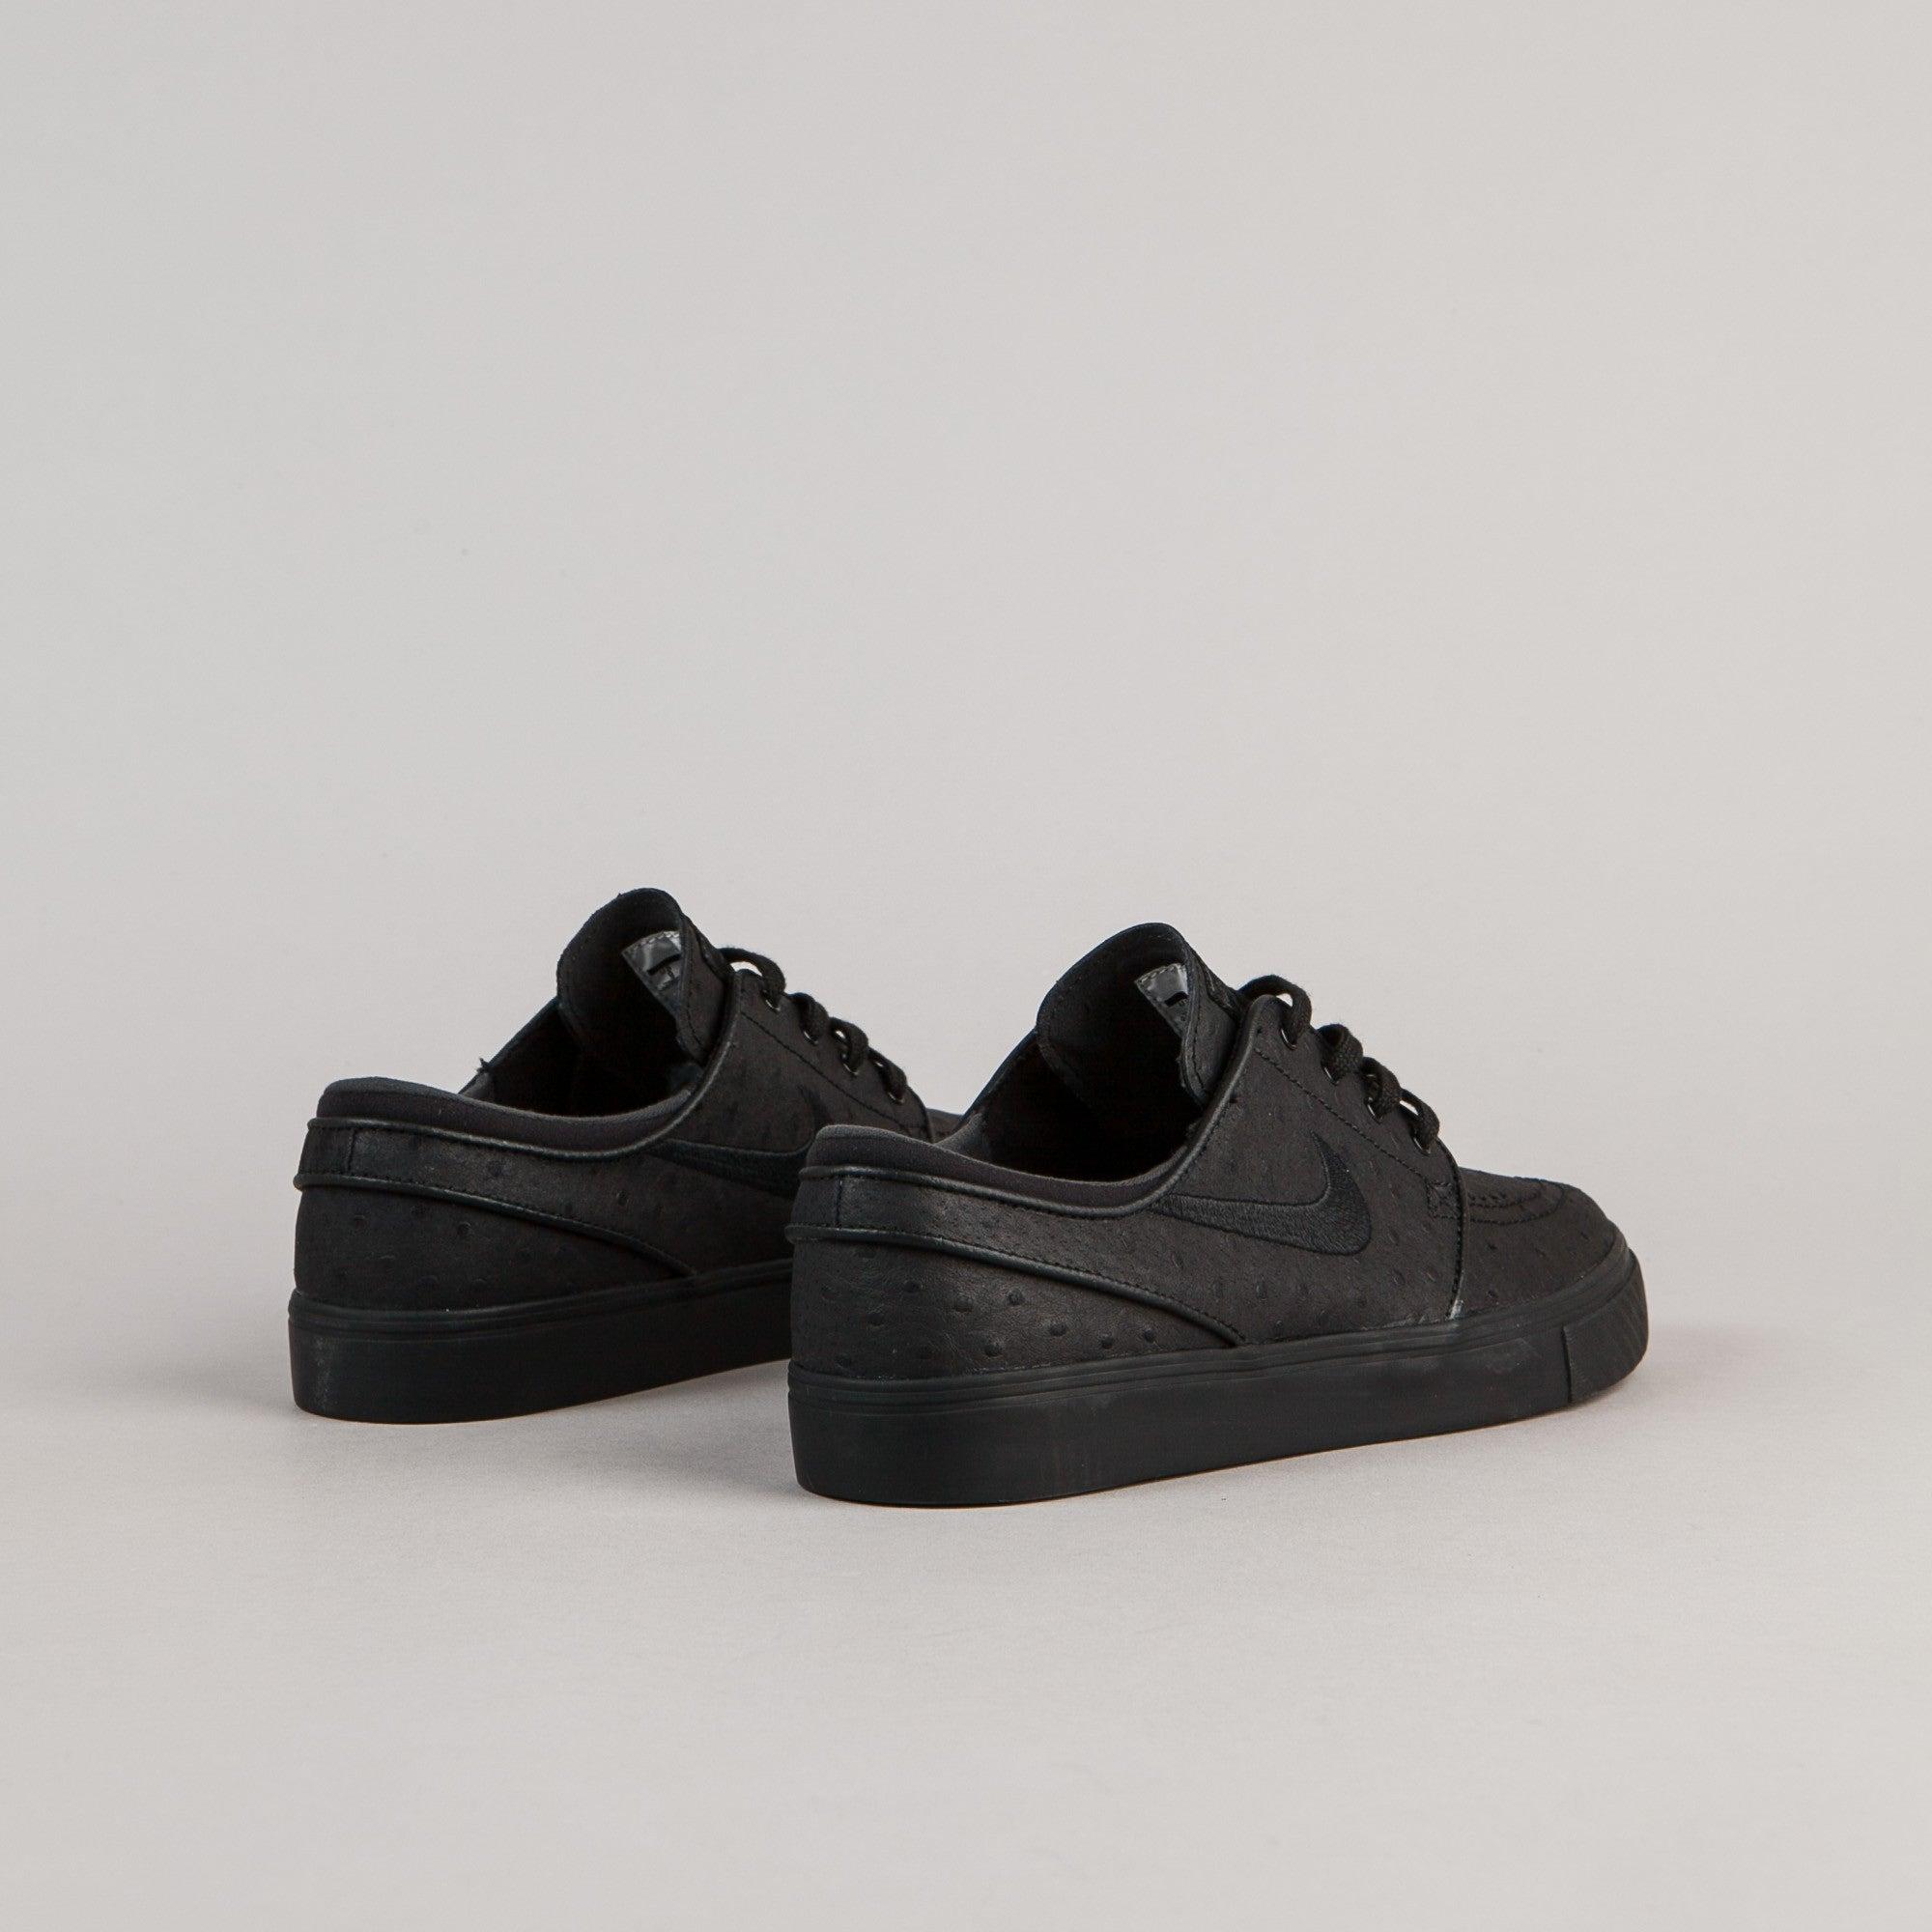 Nike SB Stefan Janoski Leather Shoes - Black / Black - Anthracite